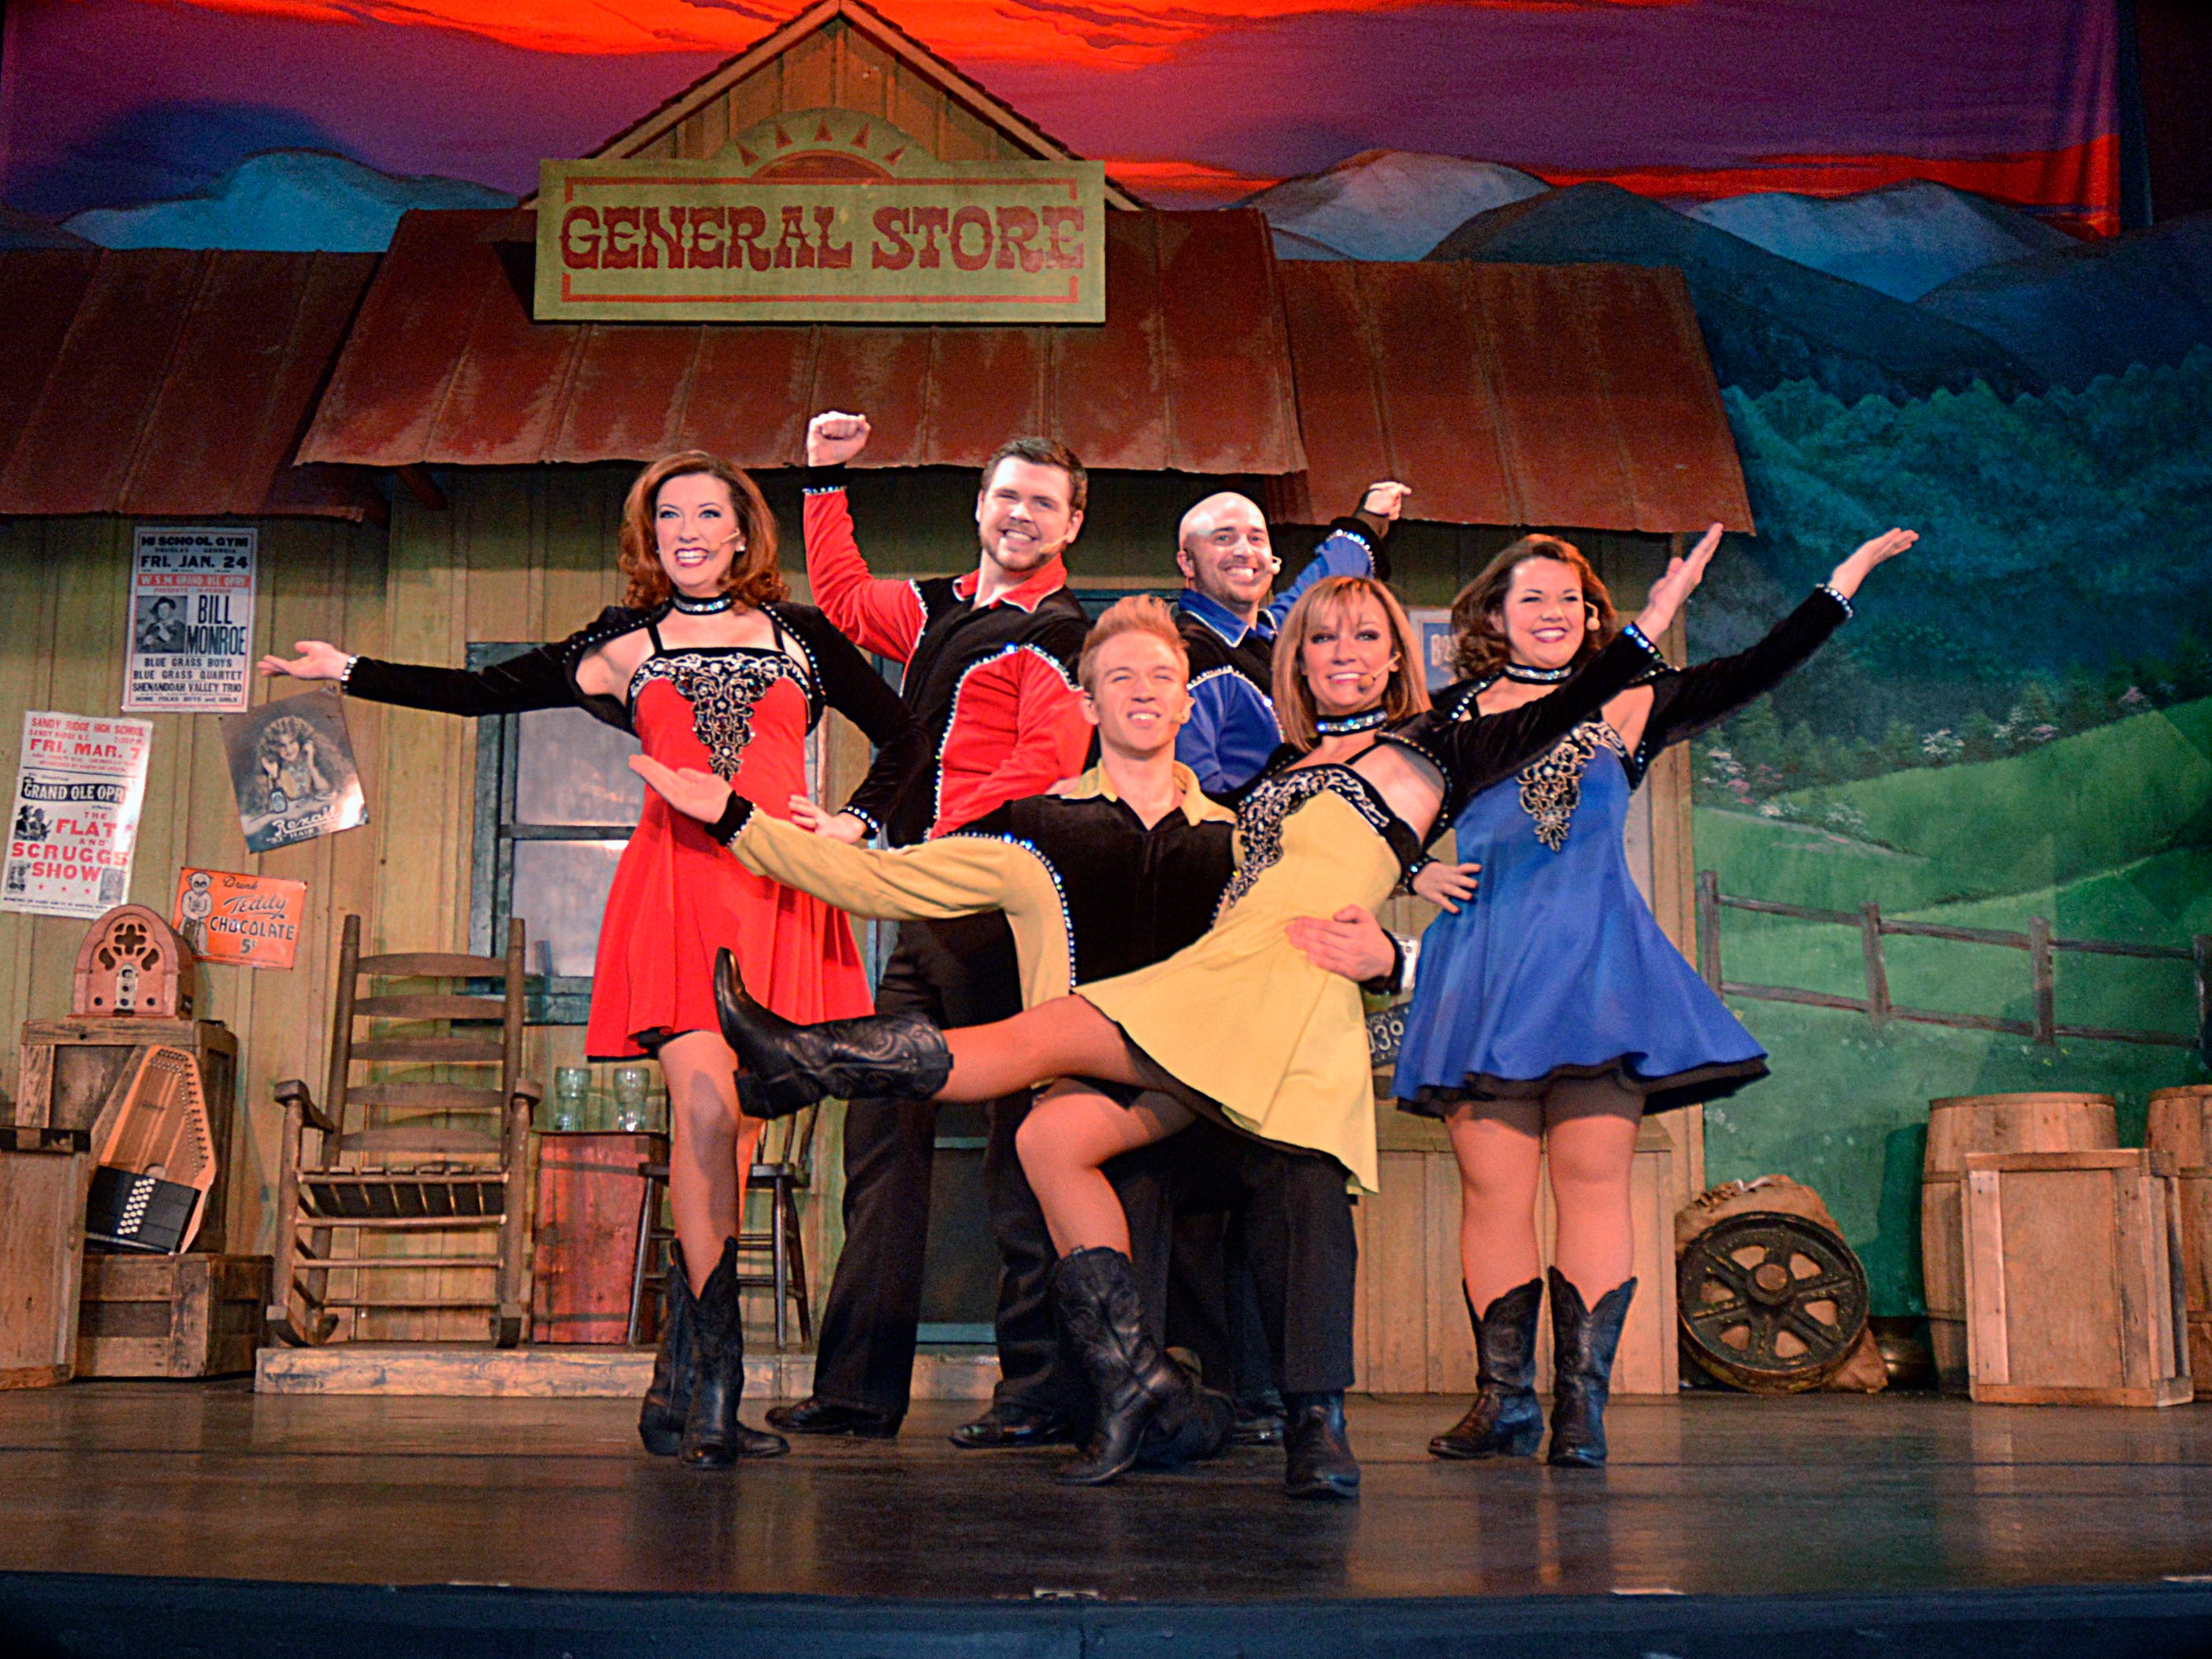 Dollywood: How to ace the theme park's entertainment auditions Jan. 12